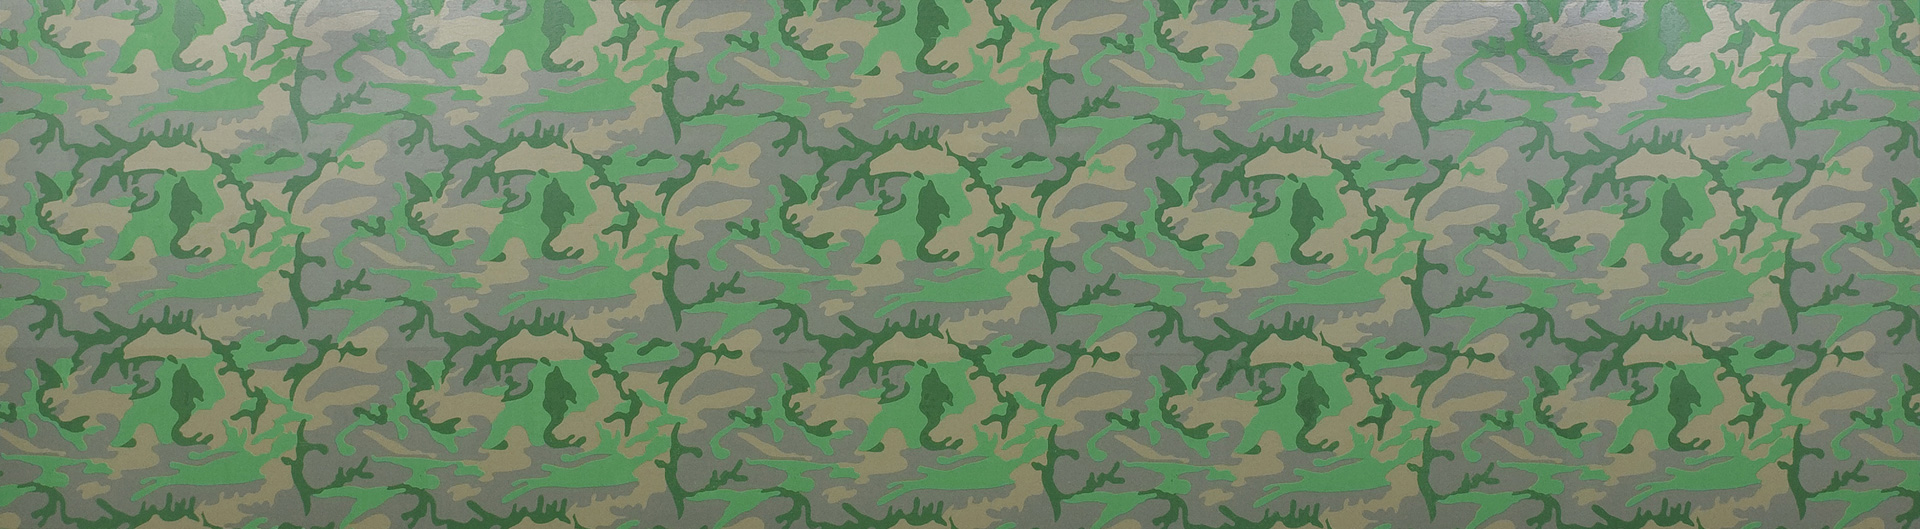 Andy Warhol - Camouflage, 1986, acrylic and silkscreen ink on canvas